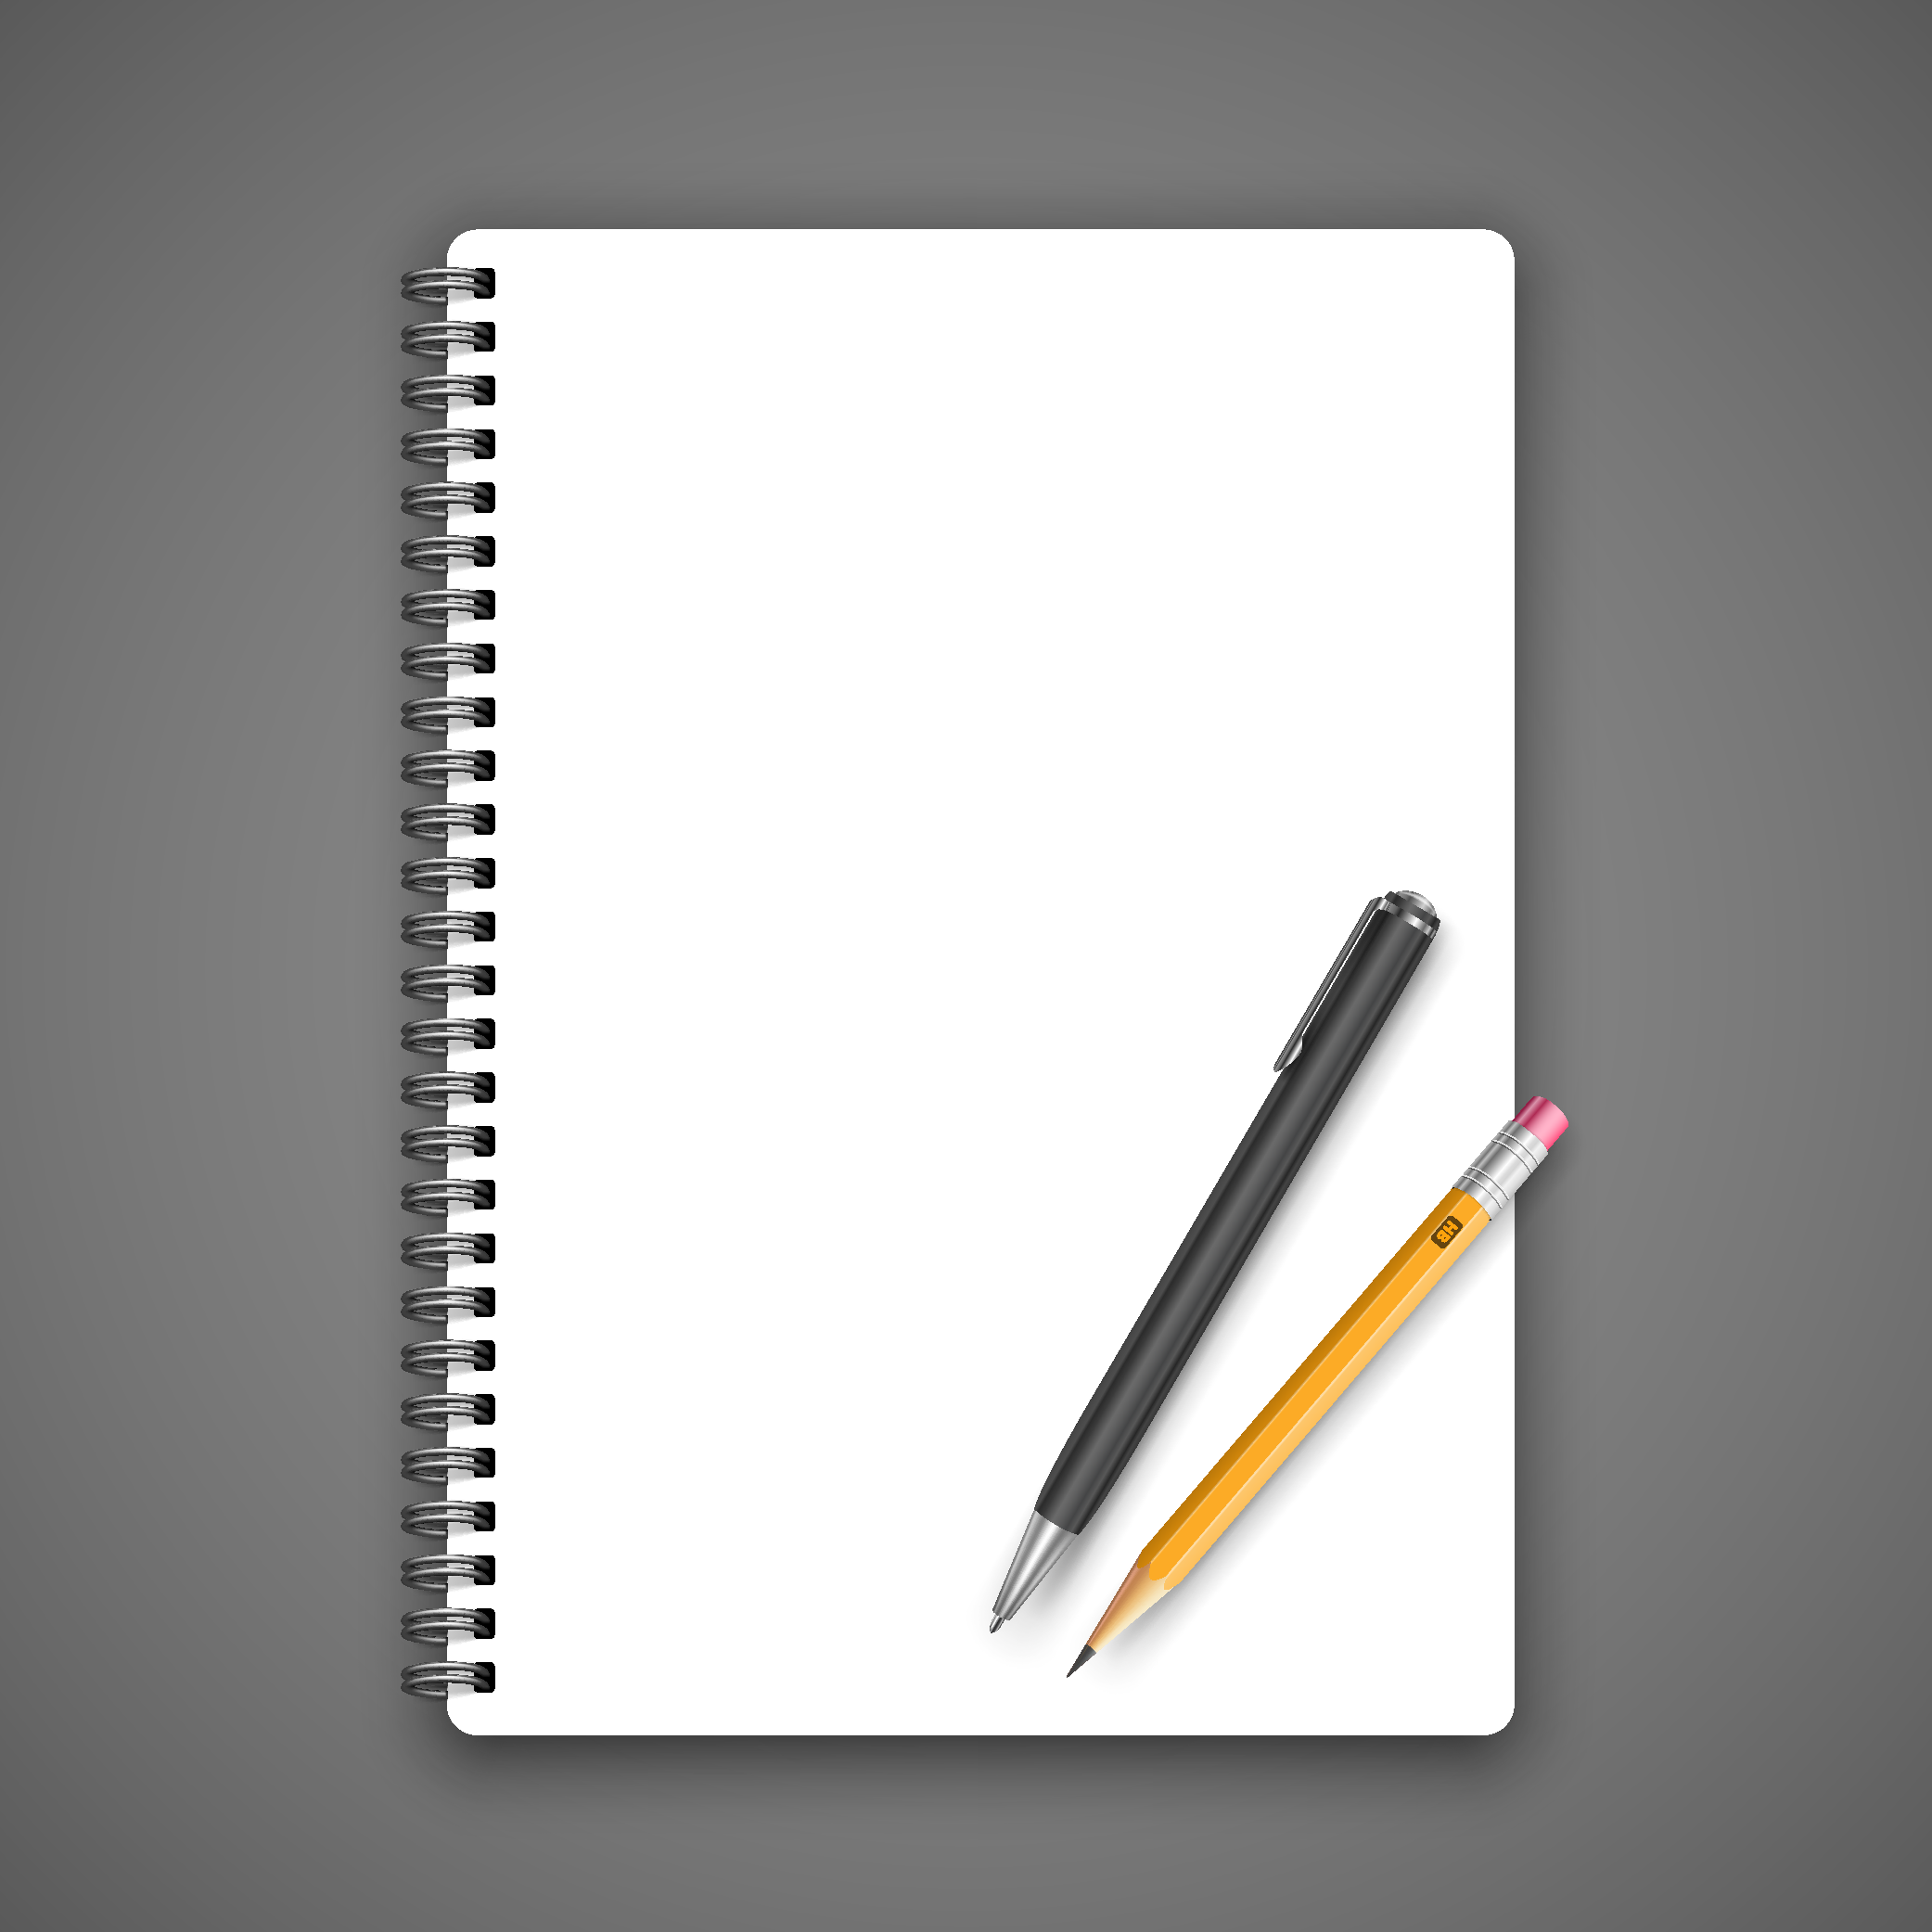 file:blank-notepad-pencil-pen - minnesota public drainage manual